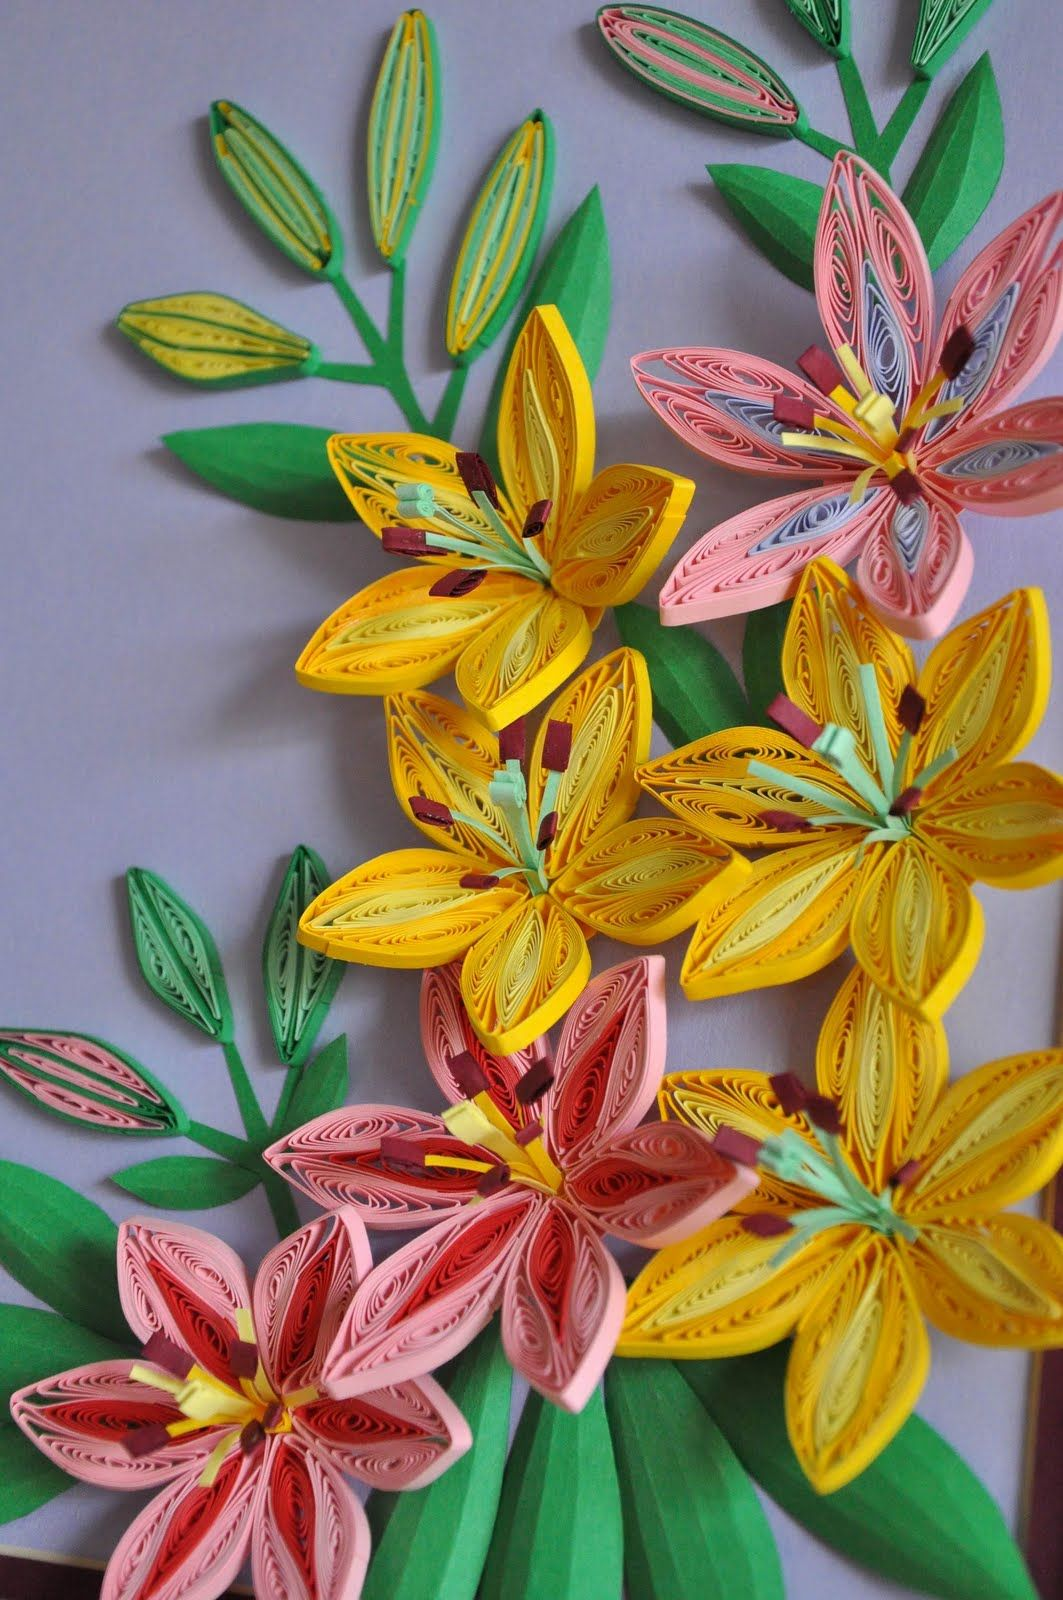 nhipaperquilling: 9/ Paper quilling | Do it yourself | Pinterest ...